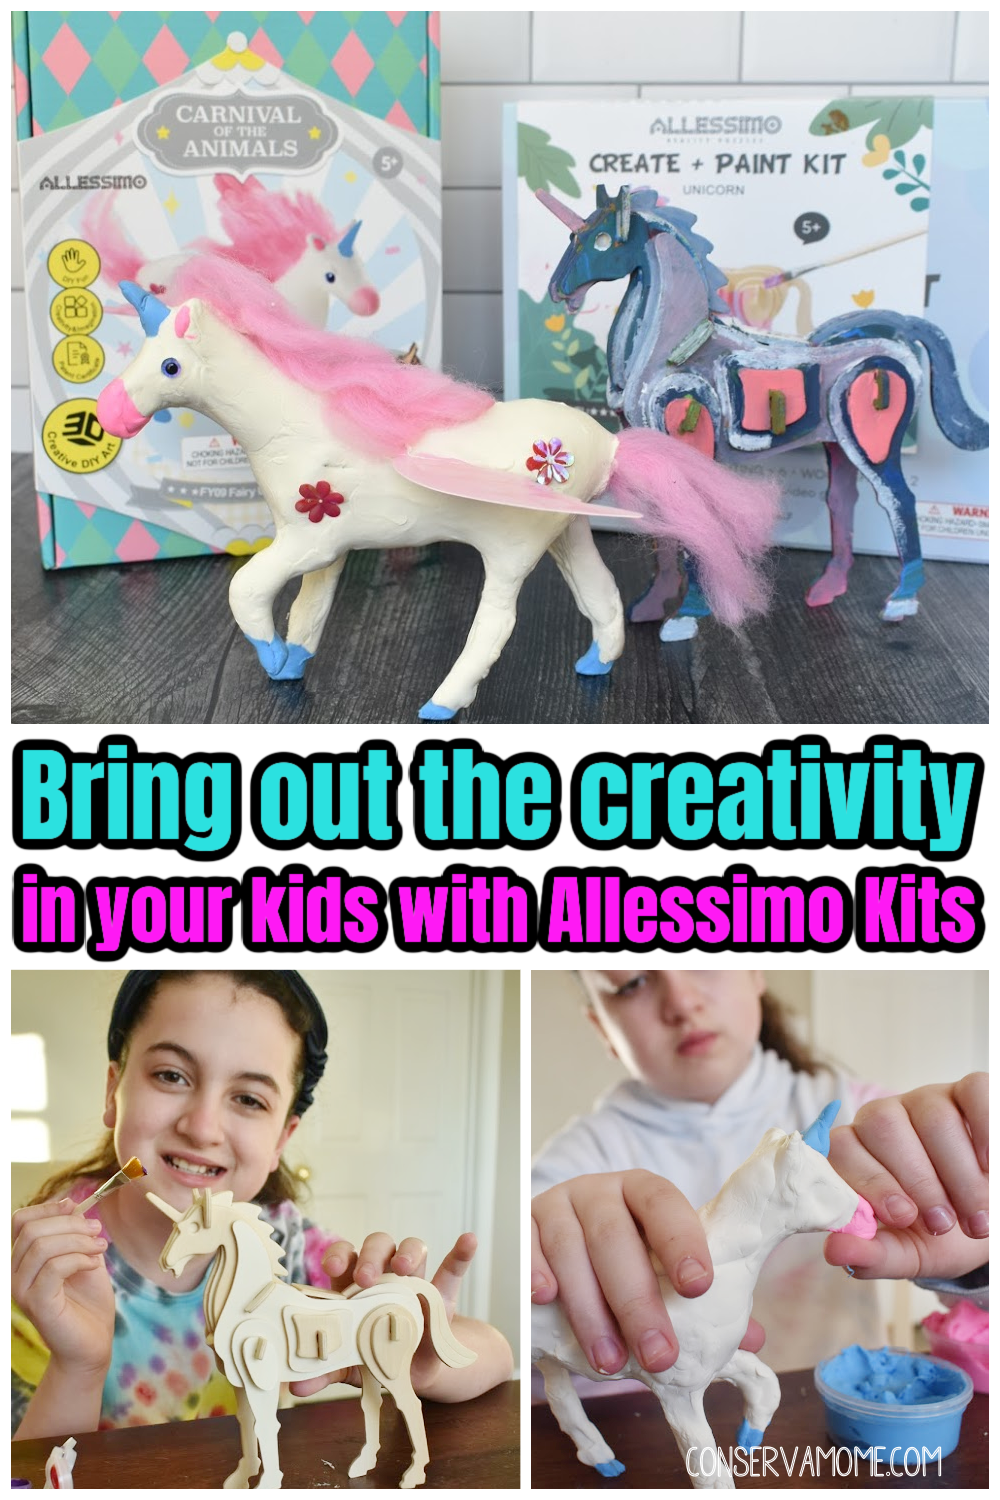 Bring out the Creativity in your kids with Allessimo kits